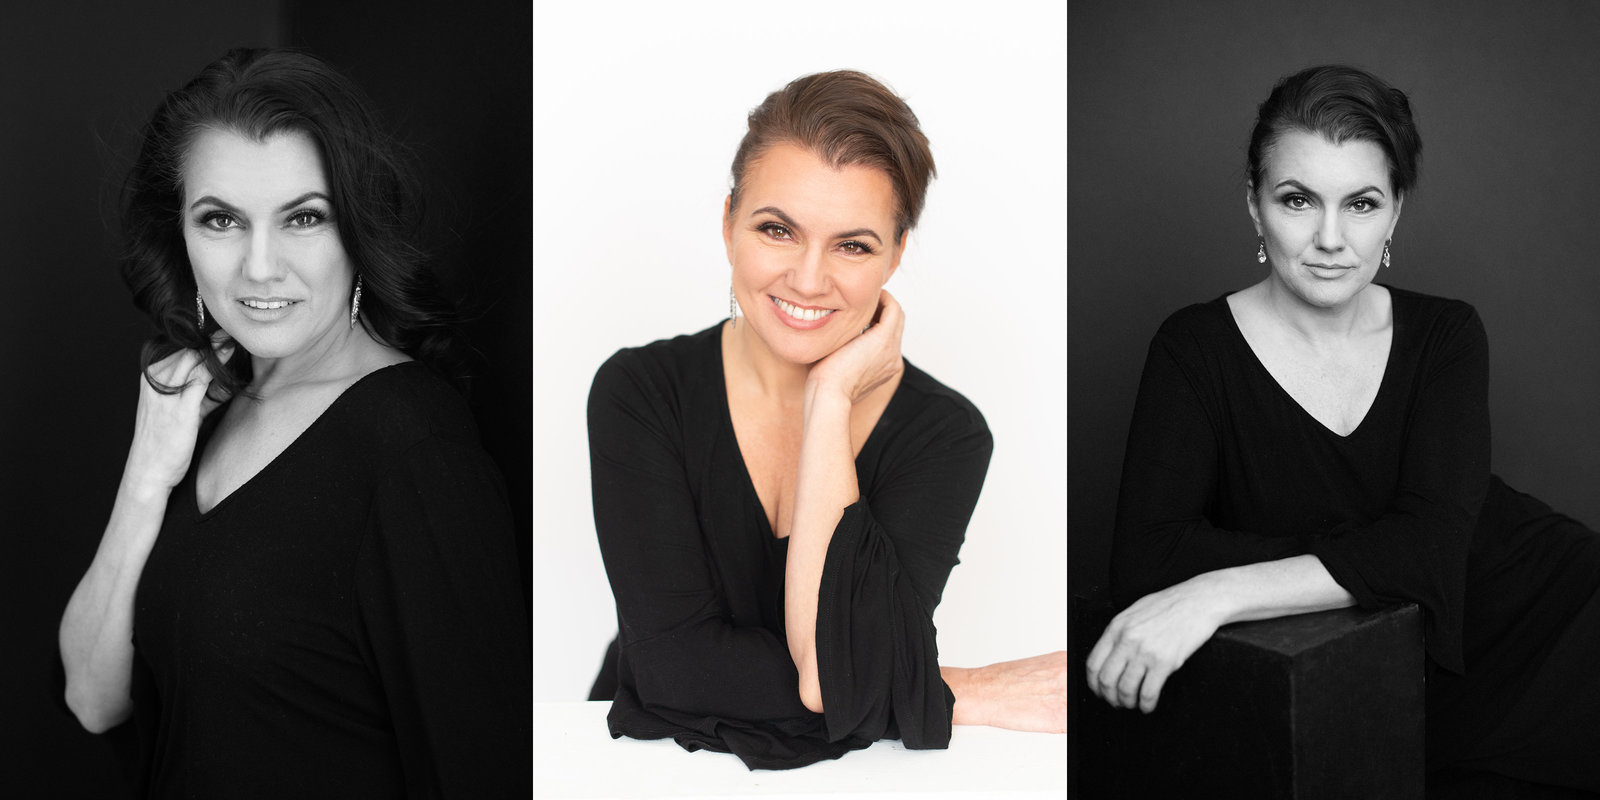 womens headshots